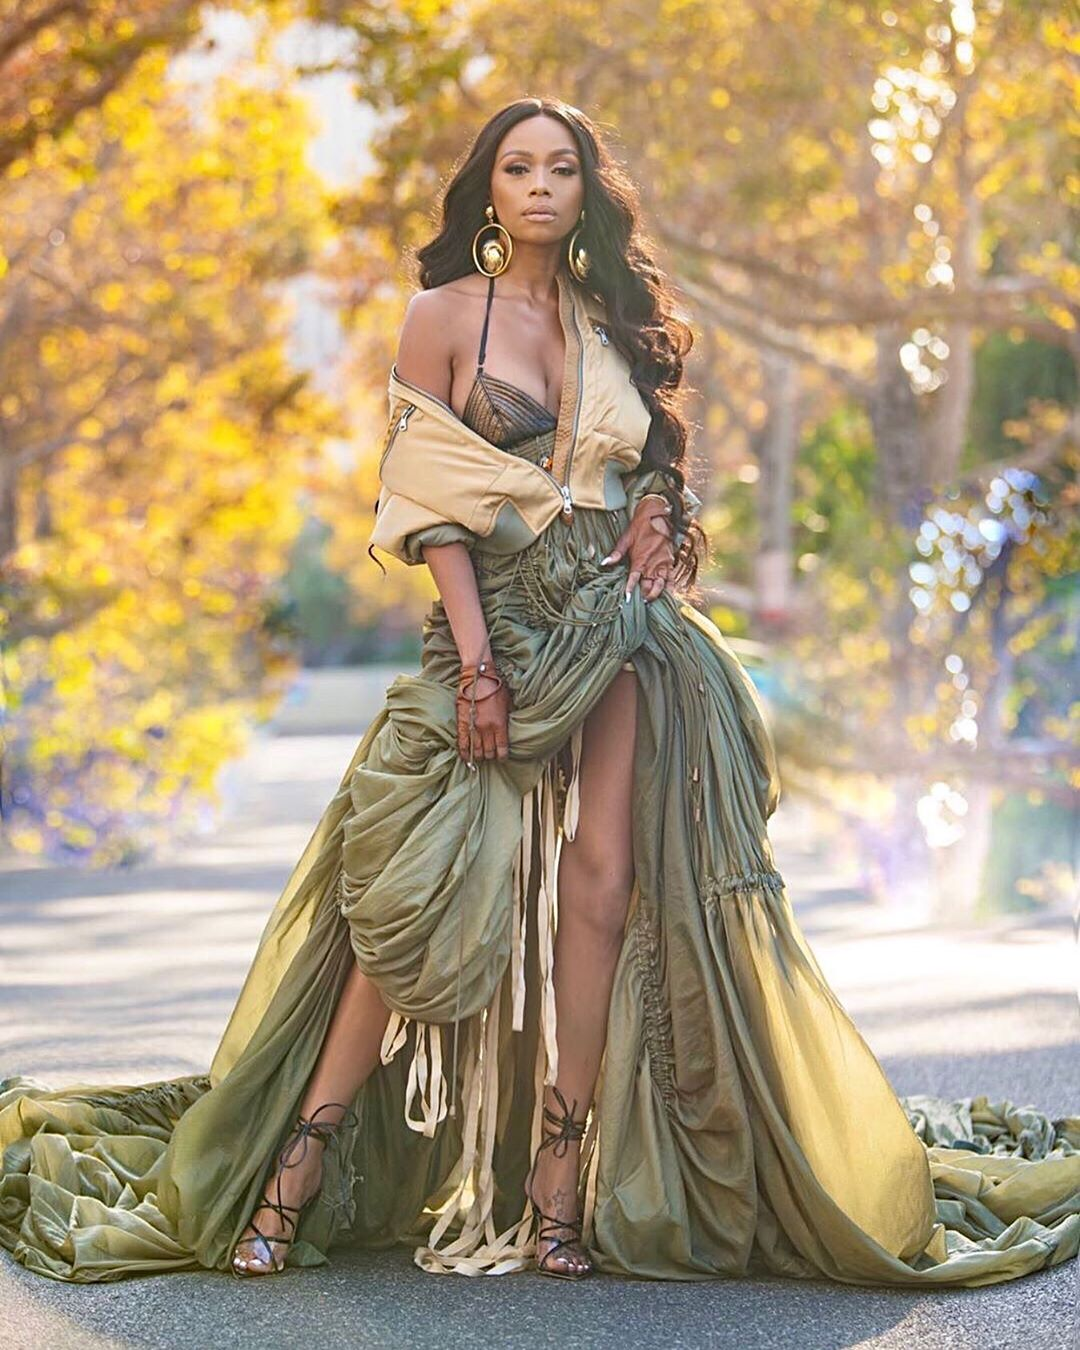 bonang-matheba-south-african-the-most-rave-worthy-looks-on-women-across-africa-celebs-style-rave